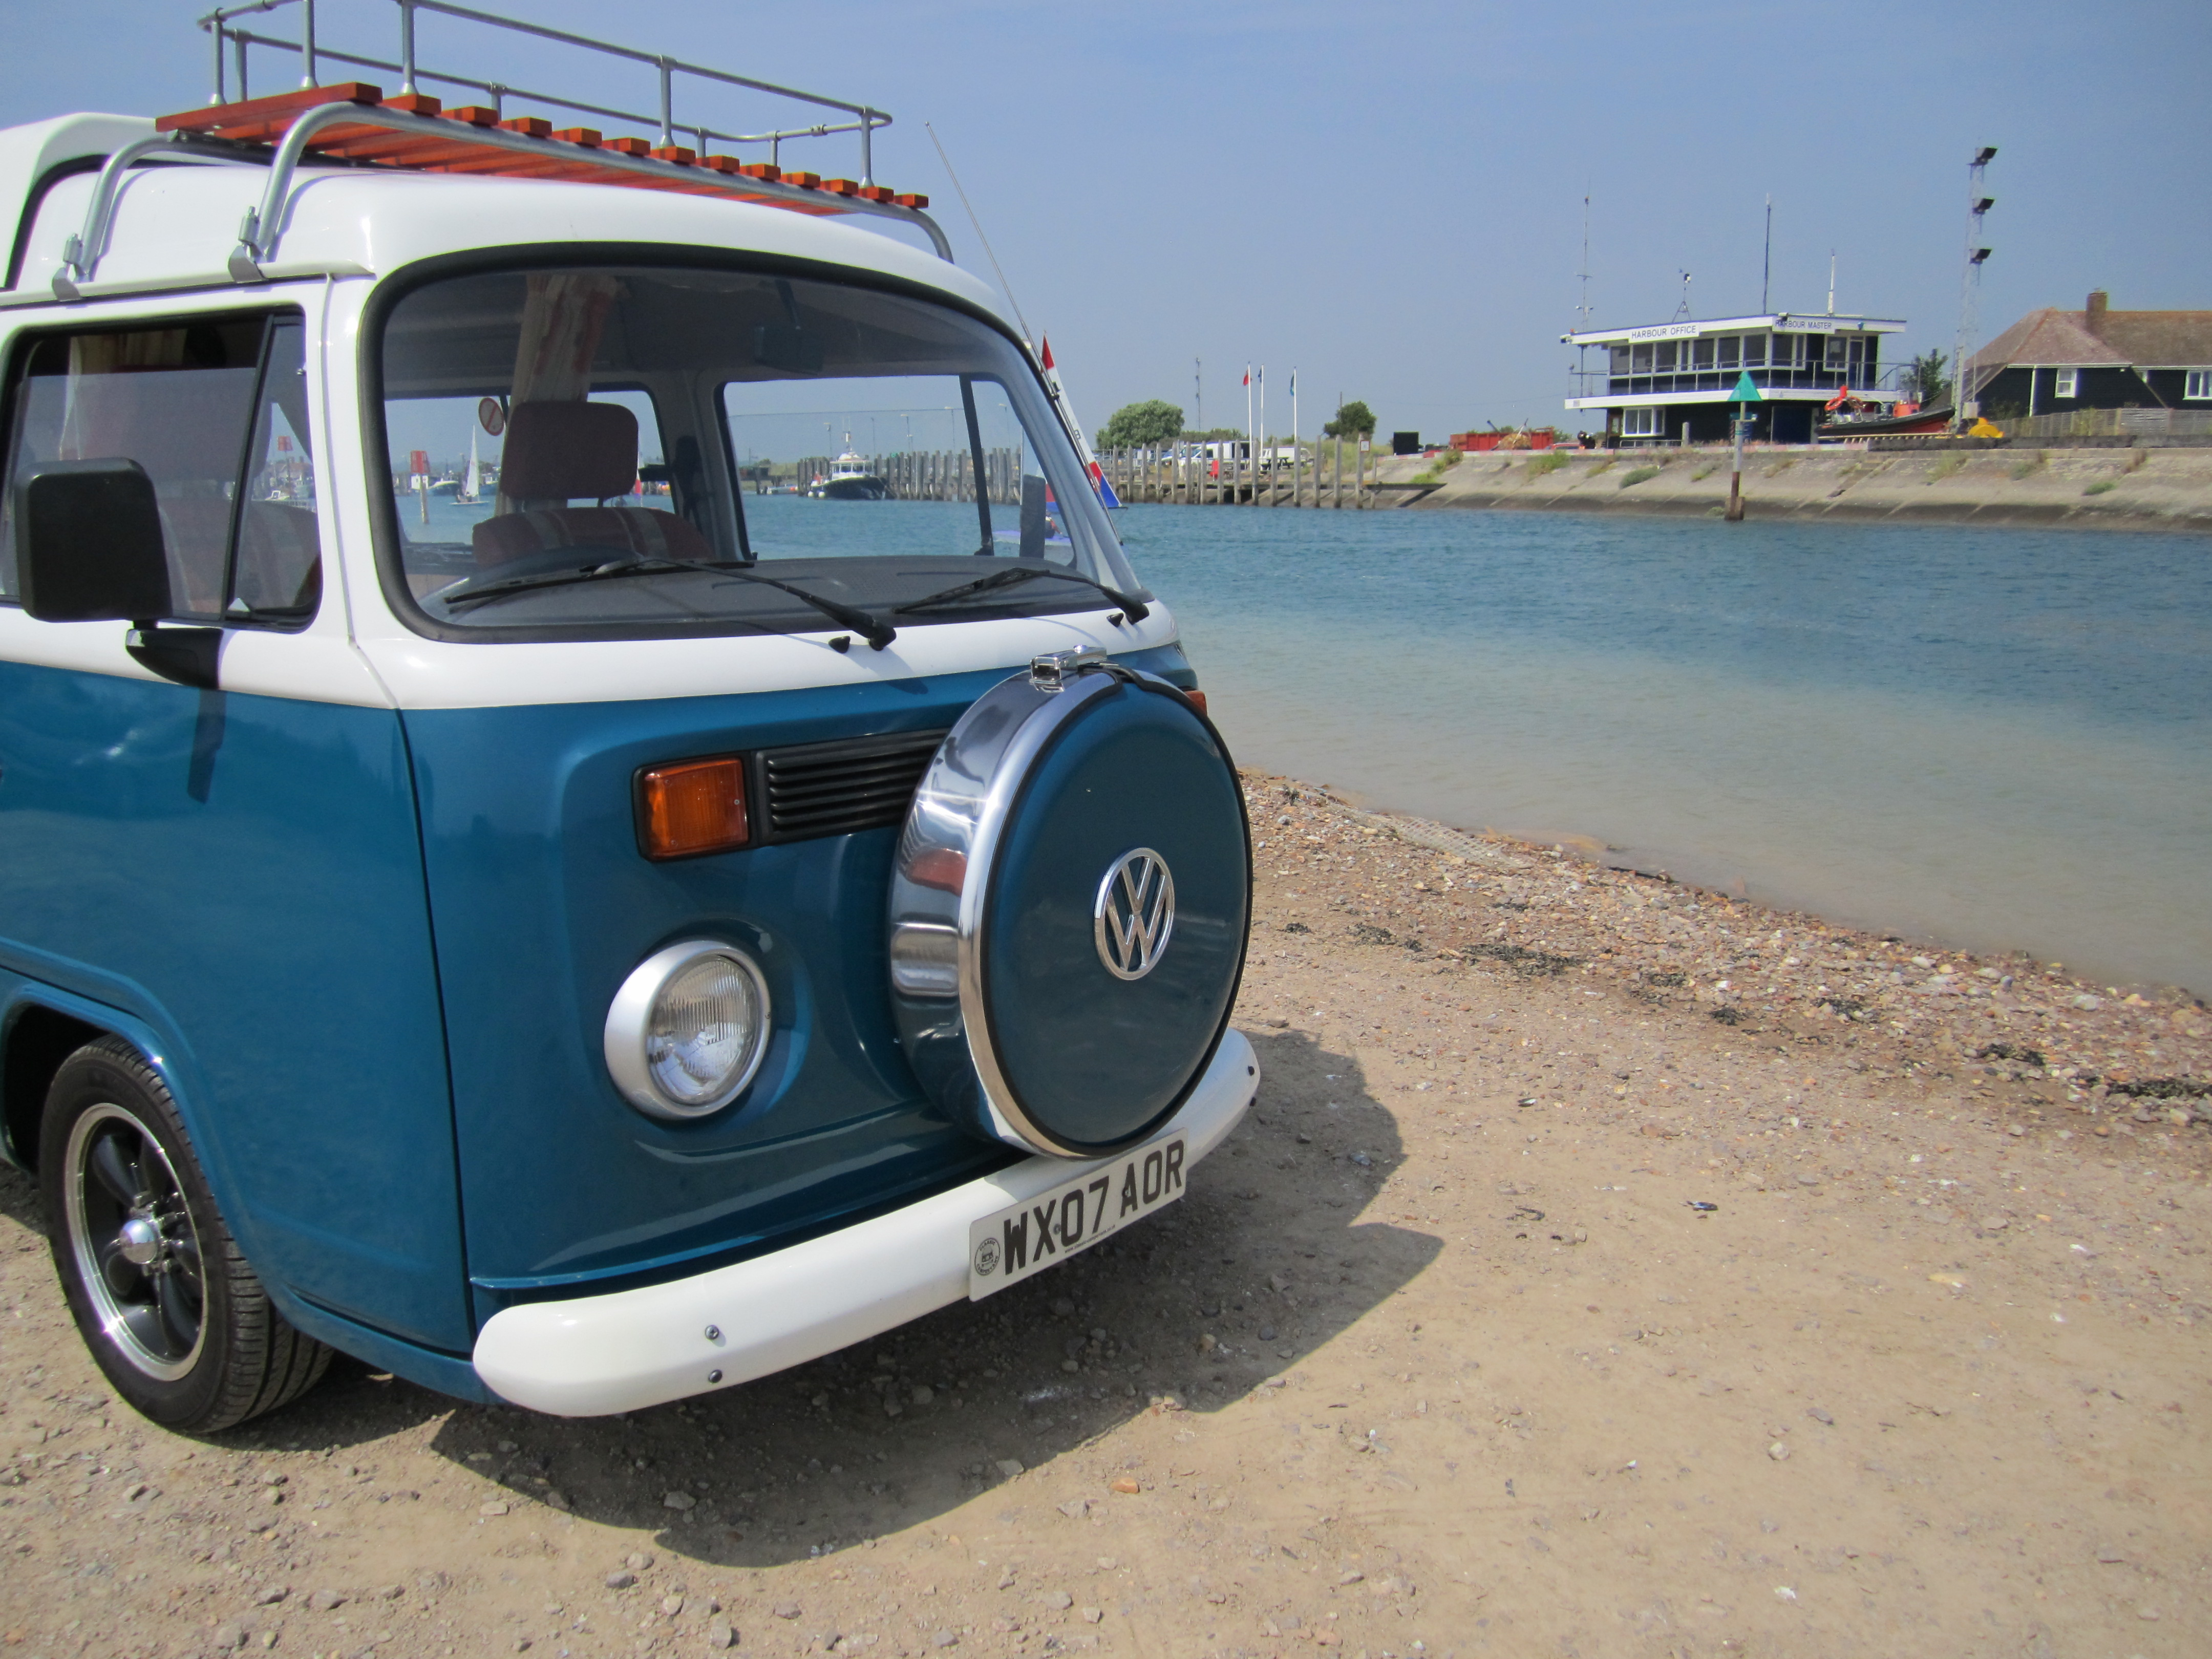 T2 Camper by the sea